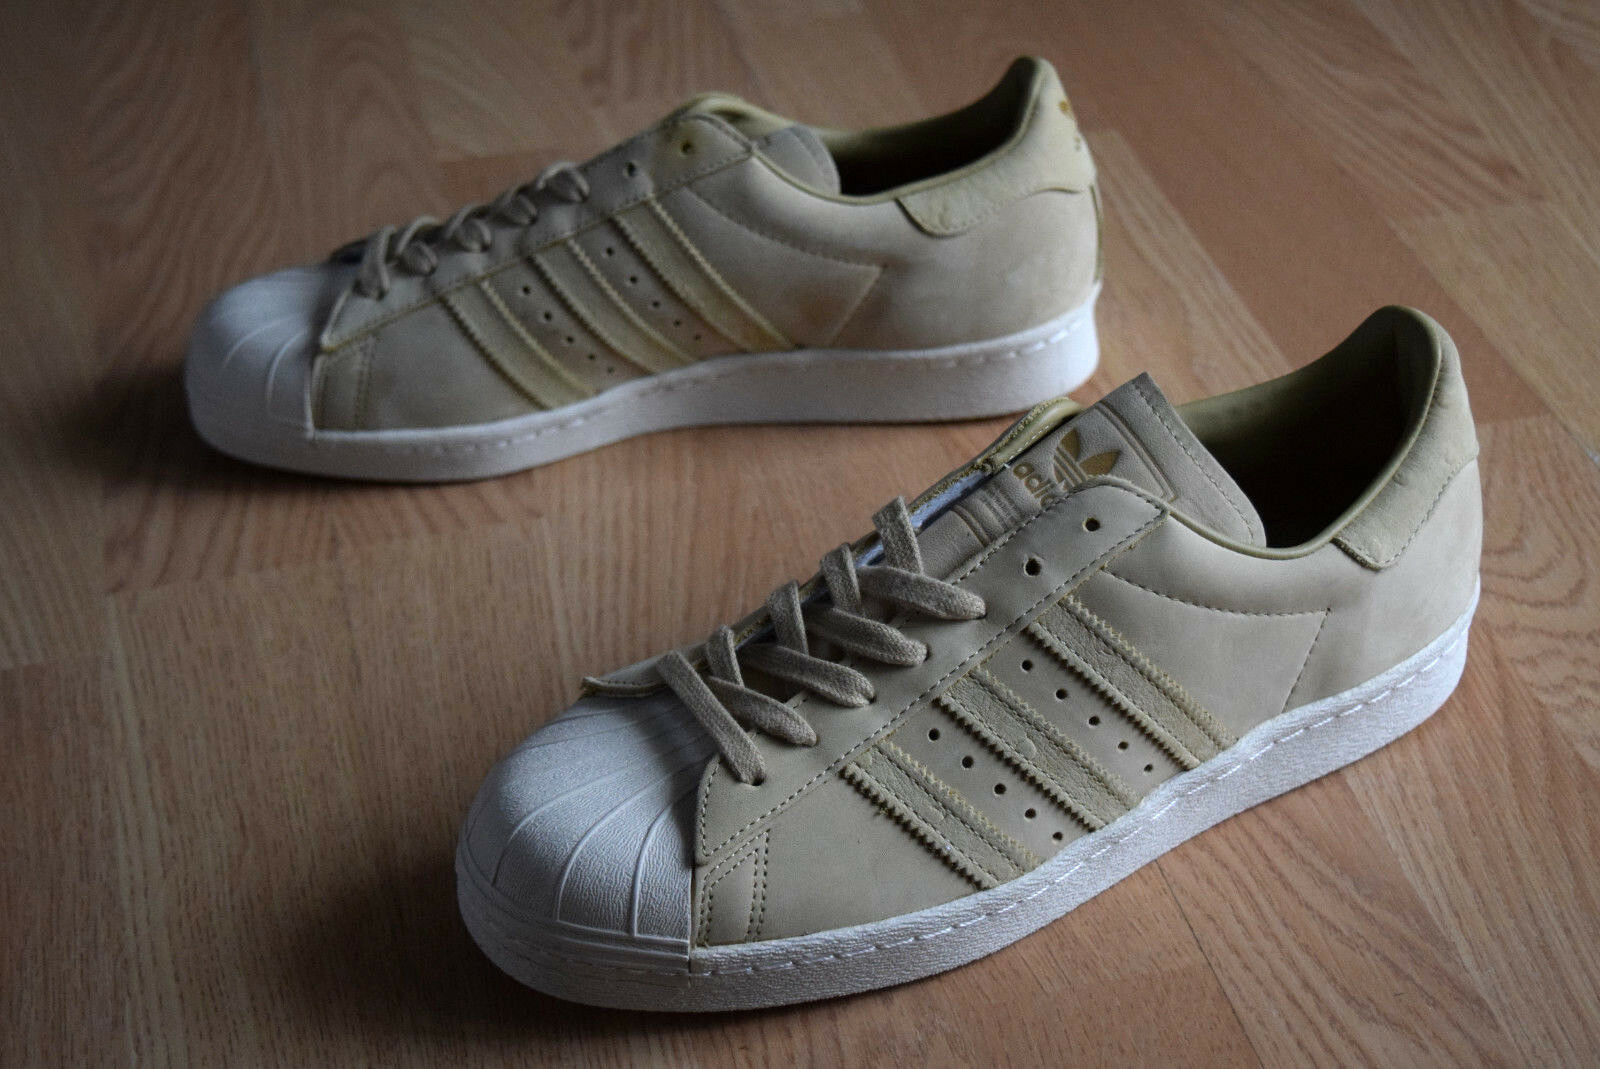 Adidas Superstar 80s  43 44 44,5 45  80s BY2507 cAmPuS sTan smitH forUm dEcadE 80's b01d3d